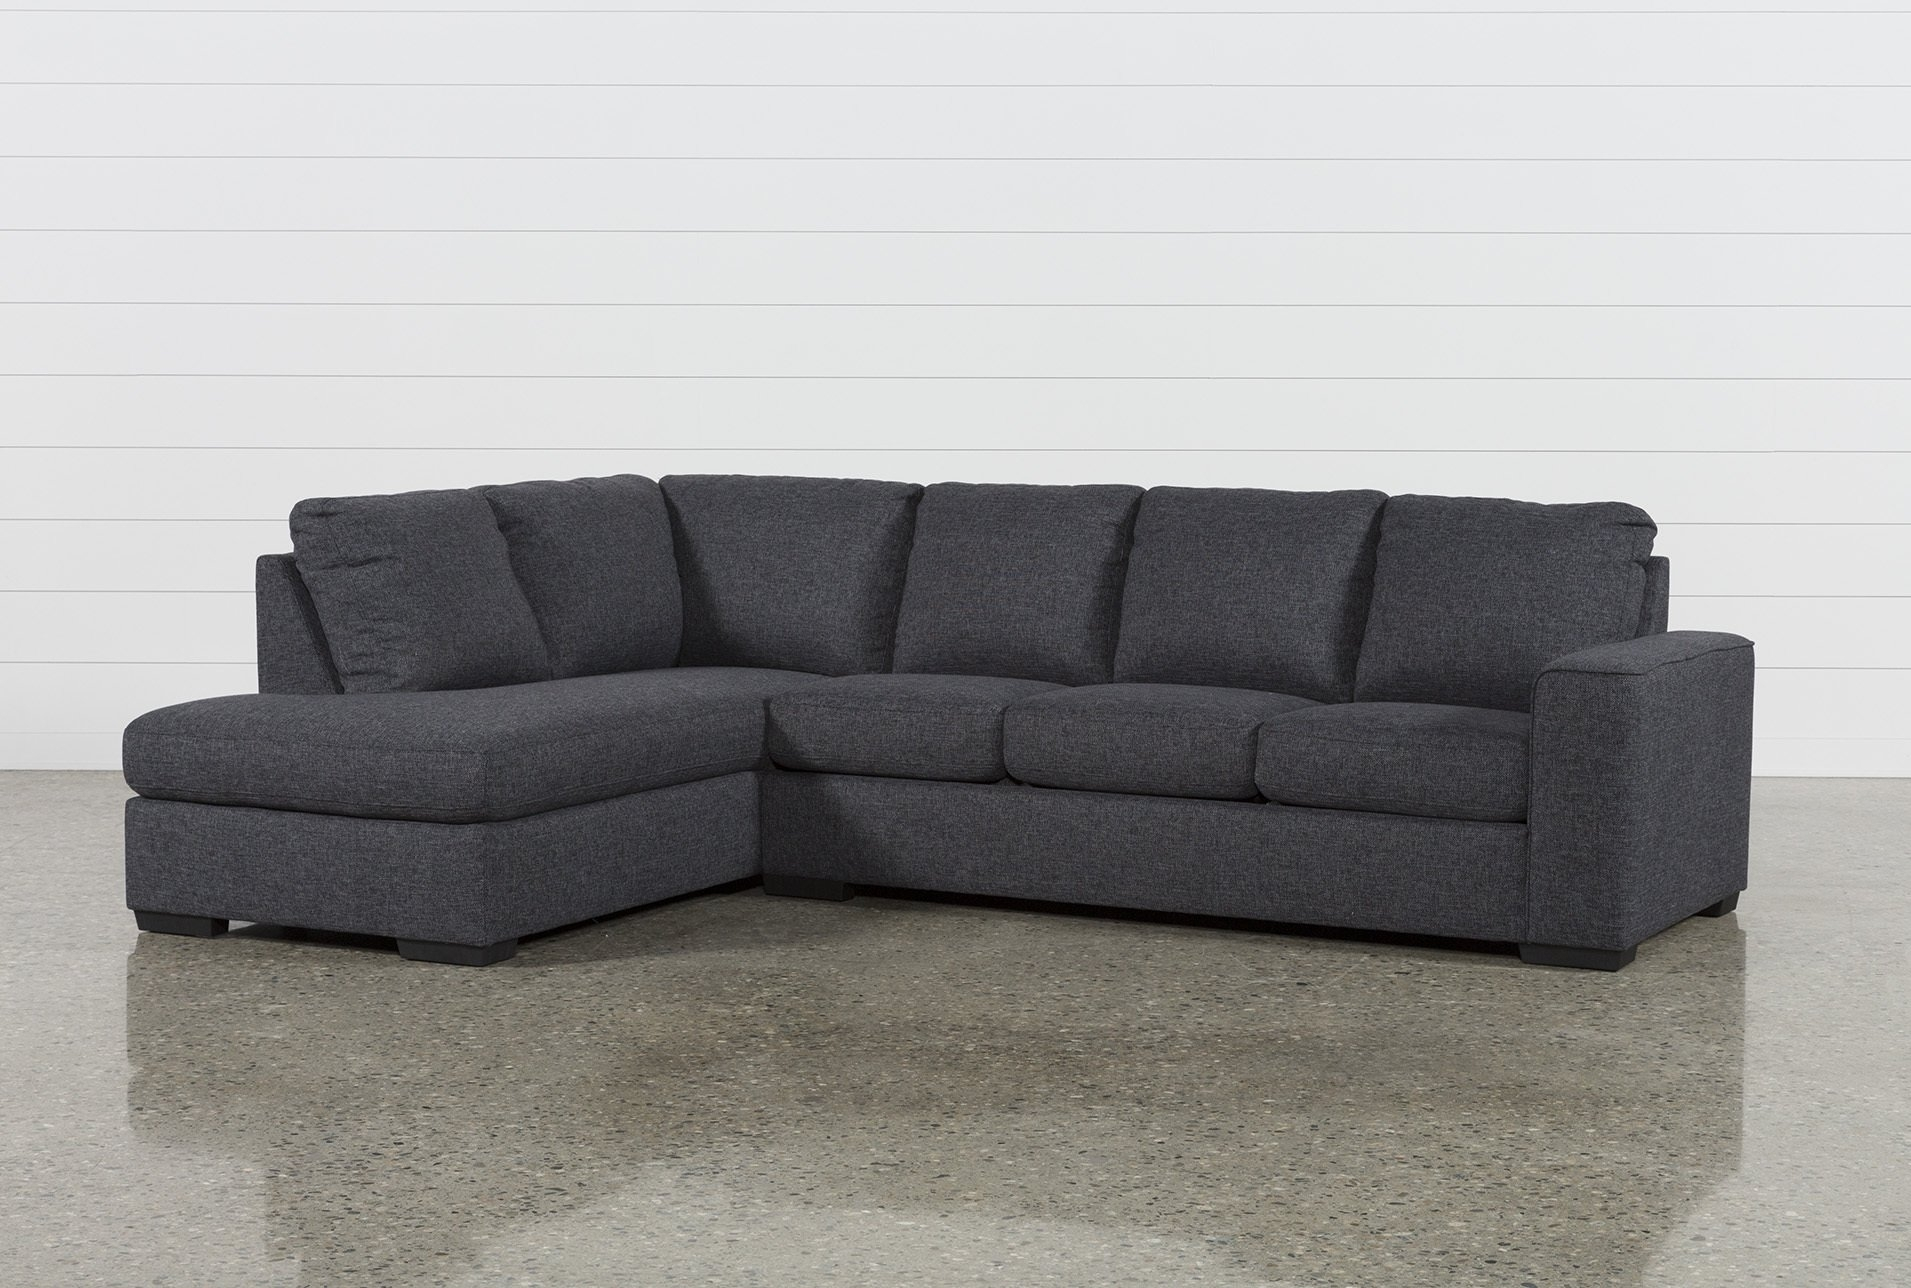 Lucy Dark Grey 2 Piece Sectional W/laf Chaise | Dark Grey And Products Regarding Aspen 2 Piece Sleeper Sectionals With Raf Chaise (Image 16 of 25)